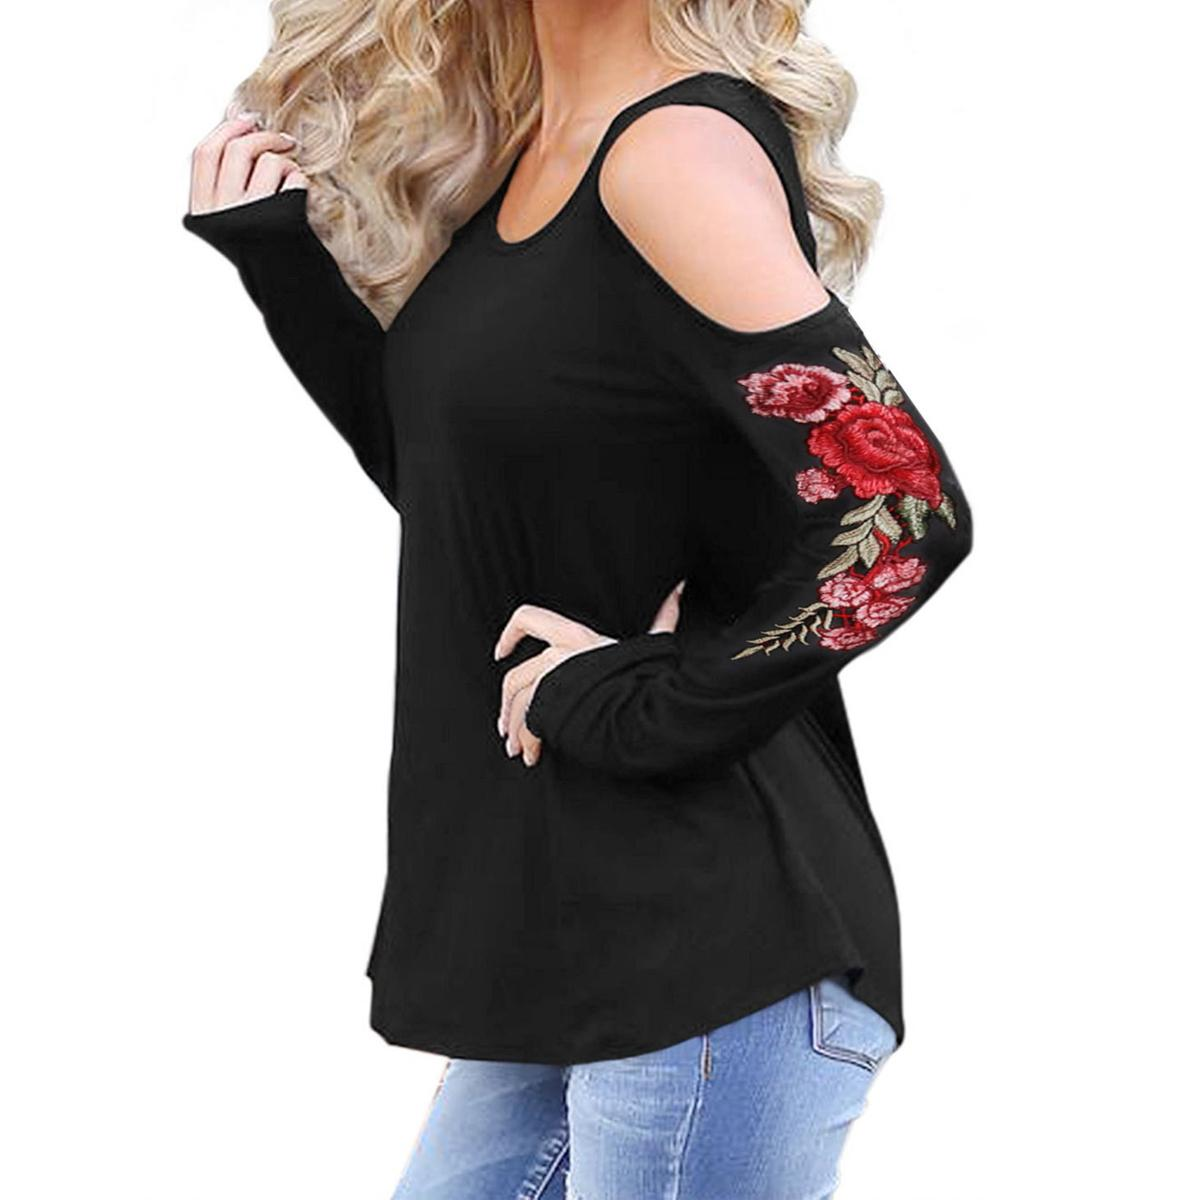 e380621f02d08 Embroidery Floral Cold Shoulder Women T Shirts Winter 2018 Female Sexy  Tattoo Tops Autumn Long Sleeve Casual Stretch Tees GV996 T Shirt Buy Cool T  Shirt ...